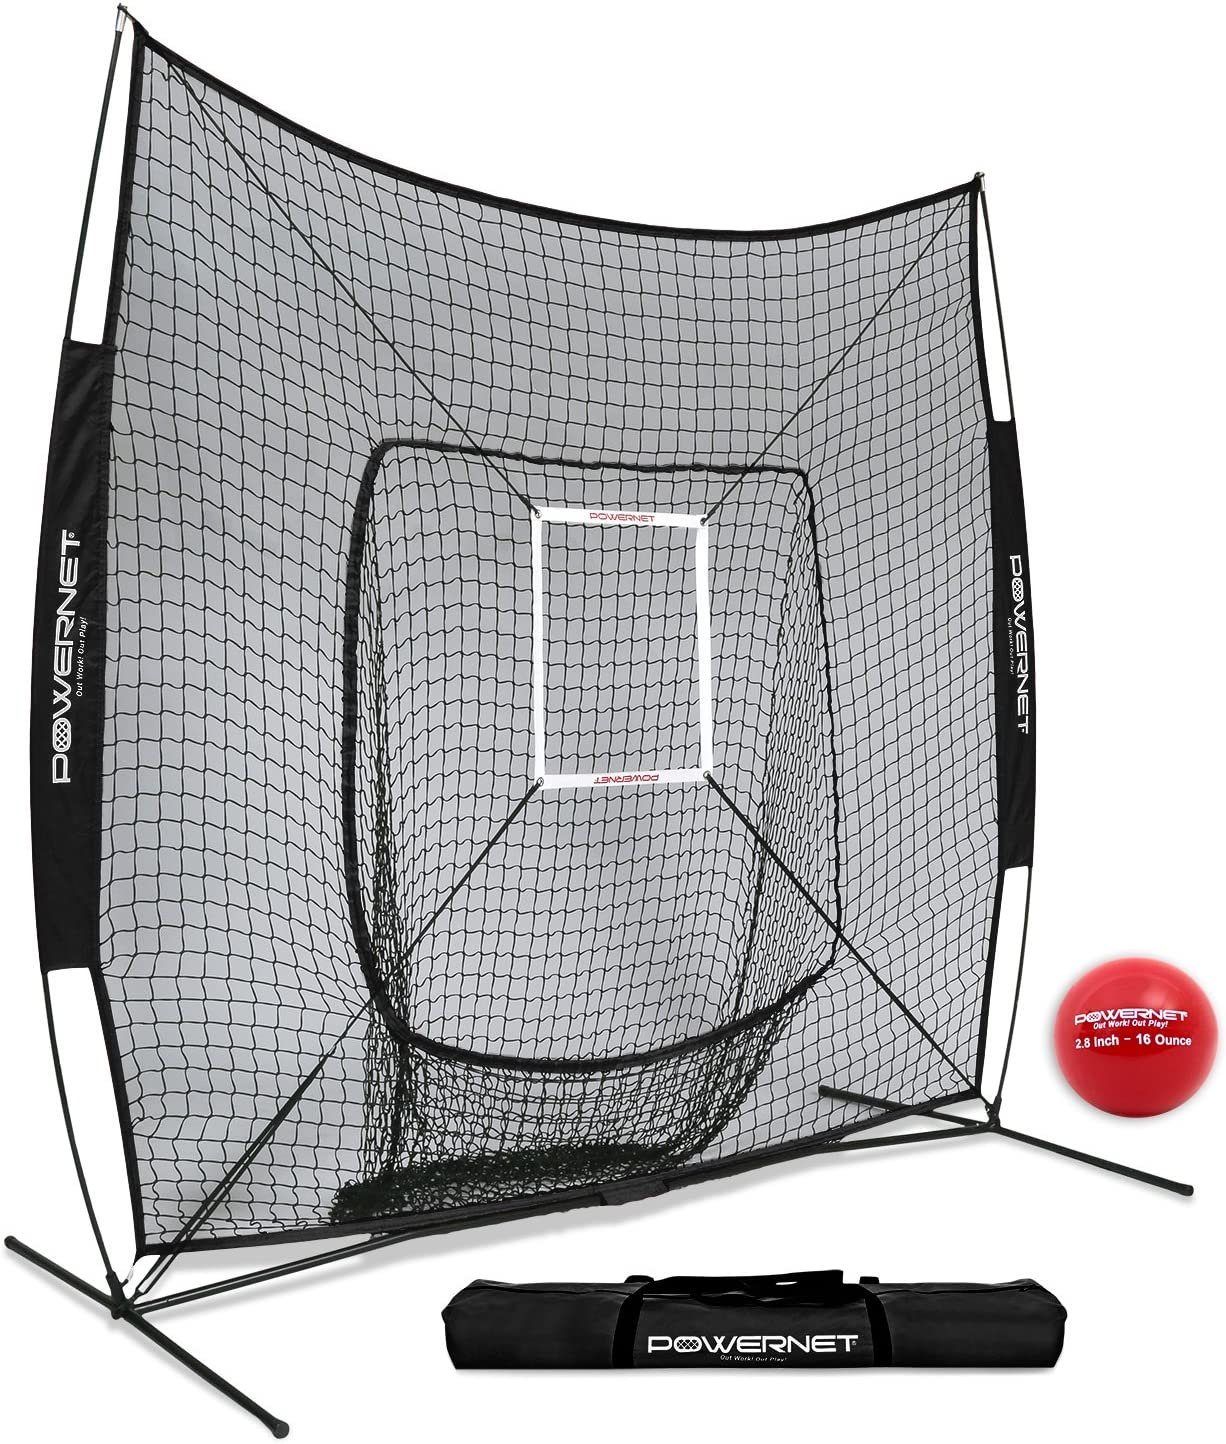 PowerNet DLX 7x7 Baseball Softball Net Heavy Hitting Weighted + Super sale period limited 40% OFF Cheap Sale